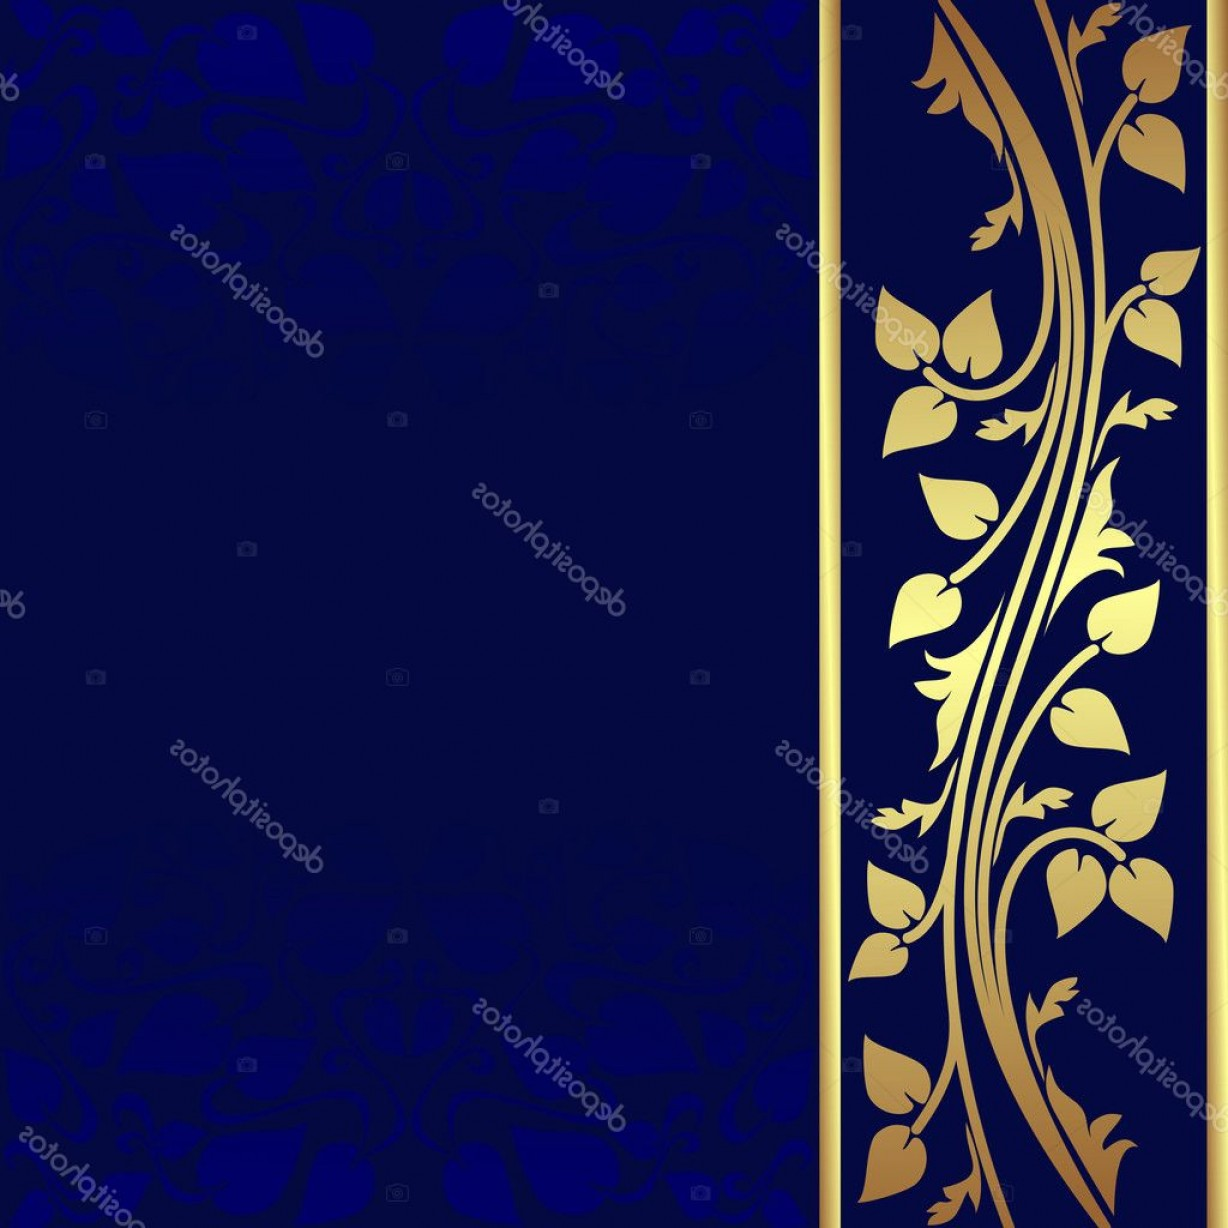 Blue And Gold Border Vector: Stock Illustration Luxury Dark Blue Background With